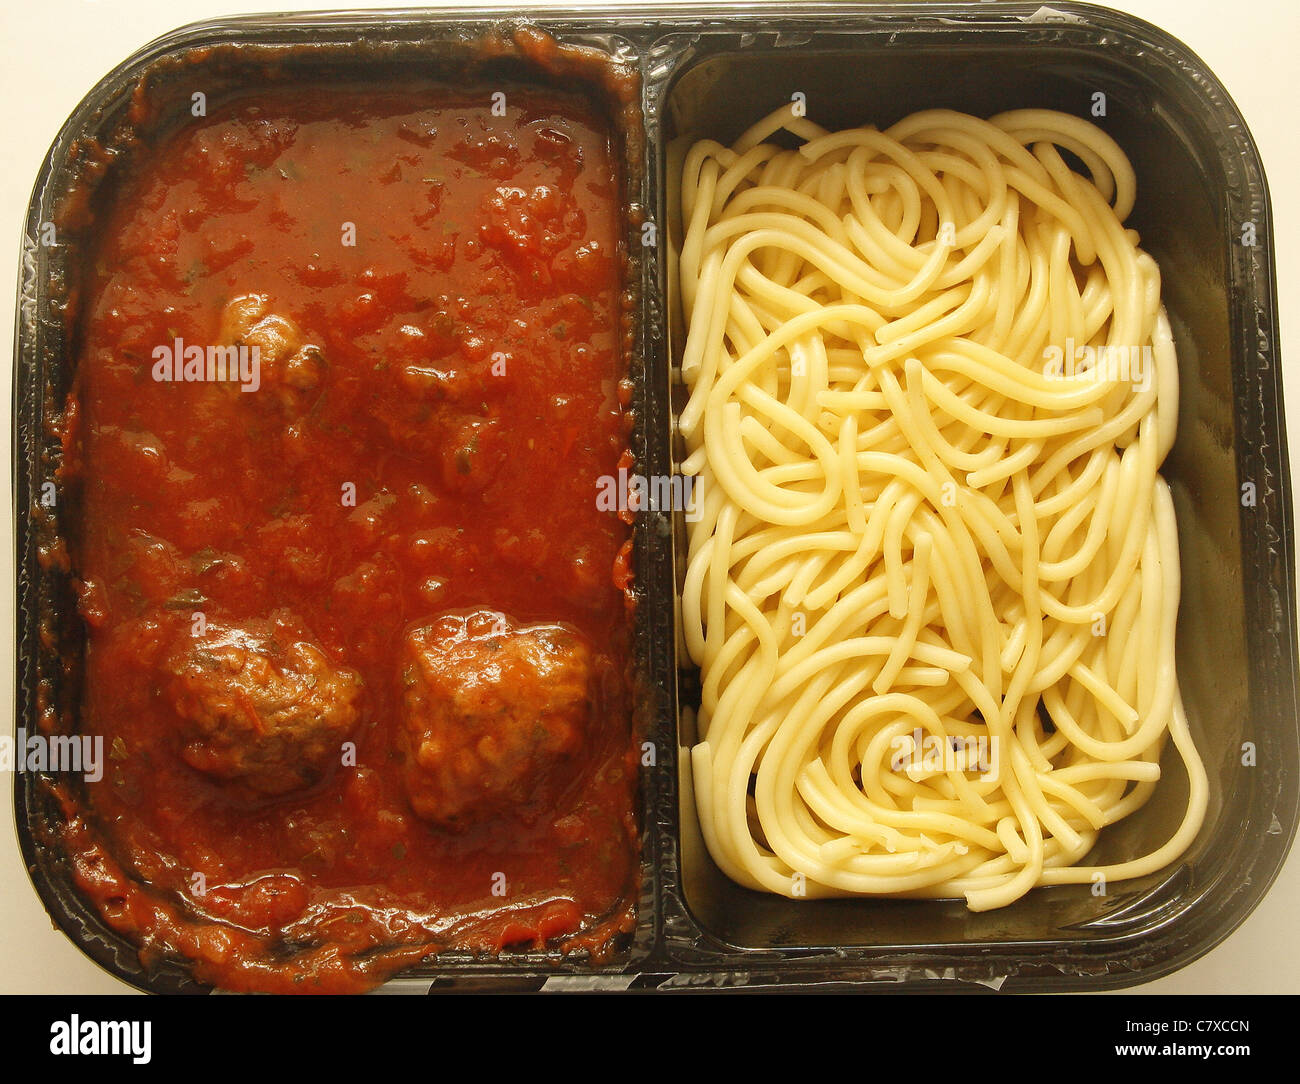 ready meal of vegetarian quorn meatballs and spaghetti - Stock Image